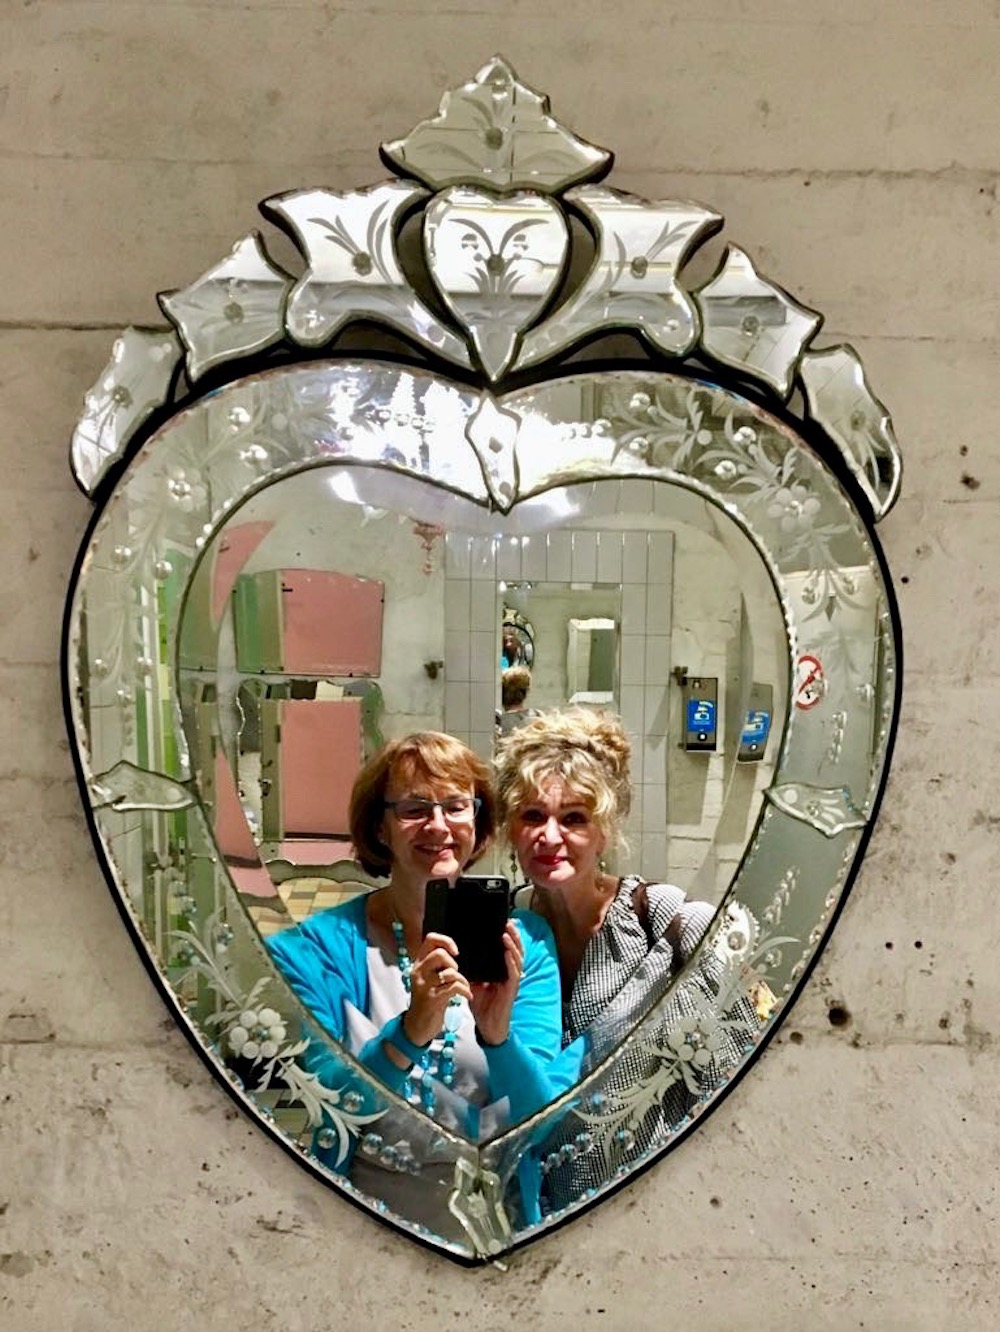 Women taking welfie in vintage mirror in Villa Augustus |curlytraveller.com